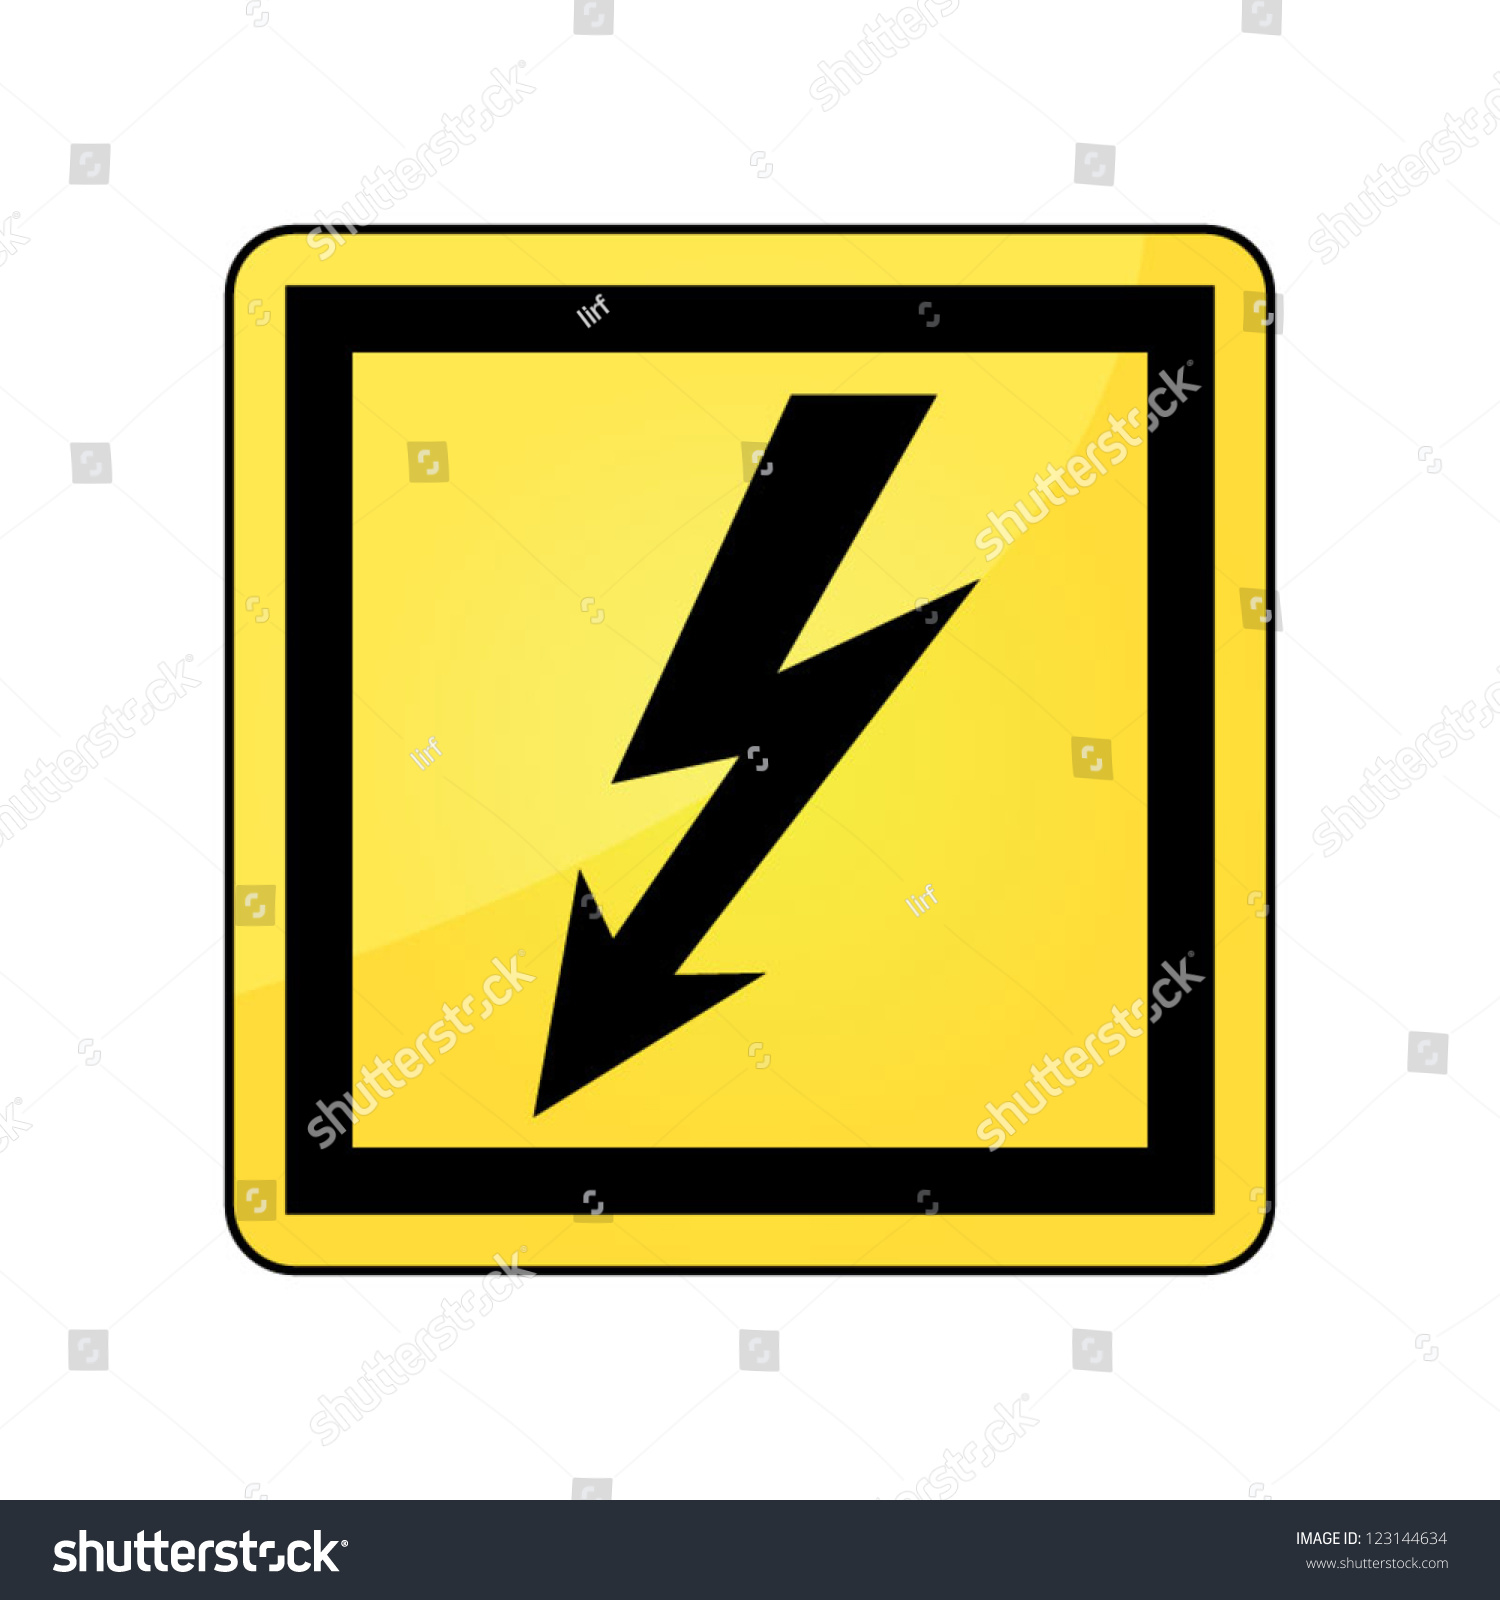 Excellent How To Wire Ssr Tiny Ibanez Pickup Wiring Round Ibanez Rg Wiring Fender S1 Switch Wiring Diagram Young Coil Tap Wiring YellowStrat Wiring Bridge Tone High Voltage Danger Sign Symbol Icon Stock Vector 123144634 ..